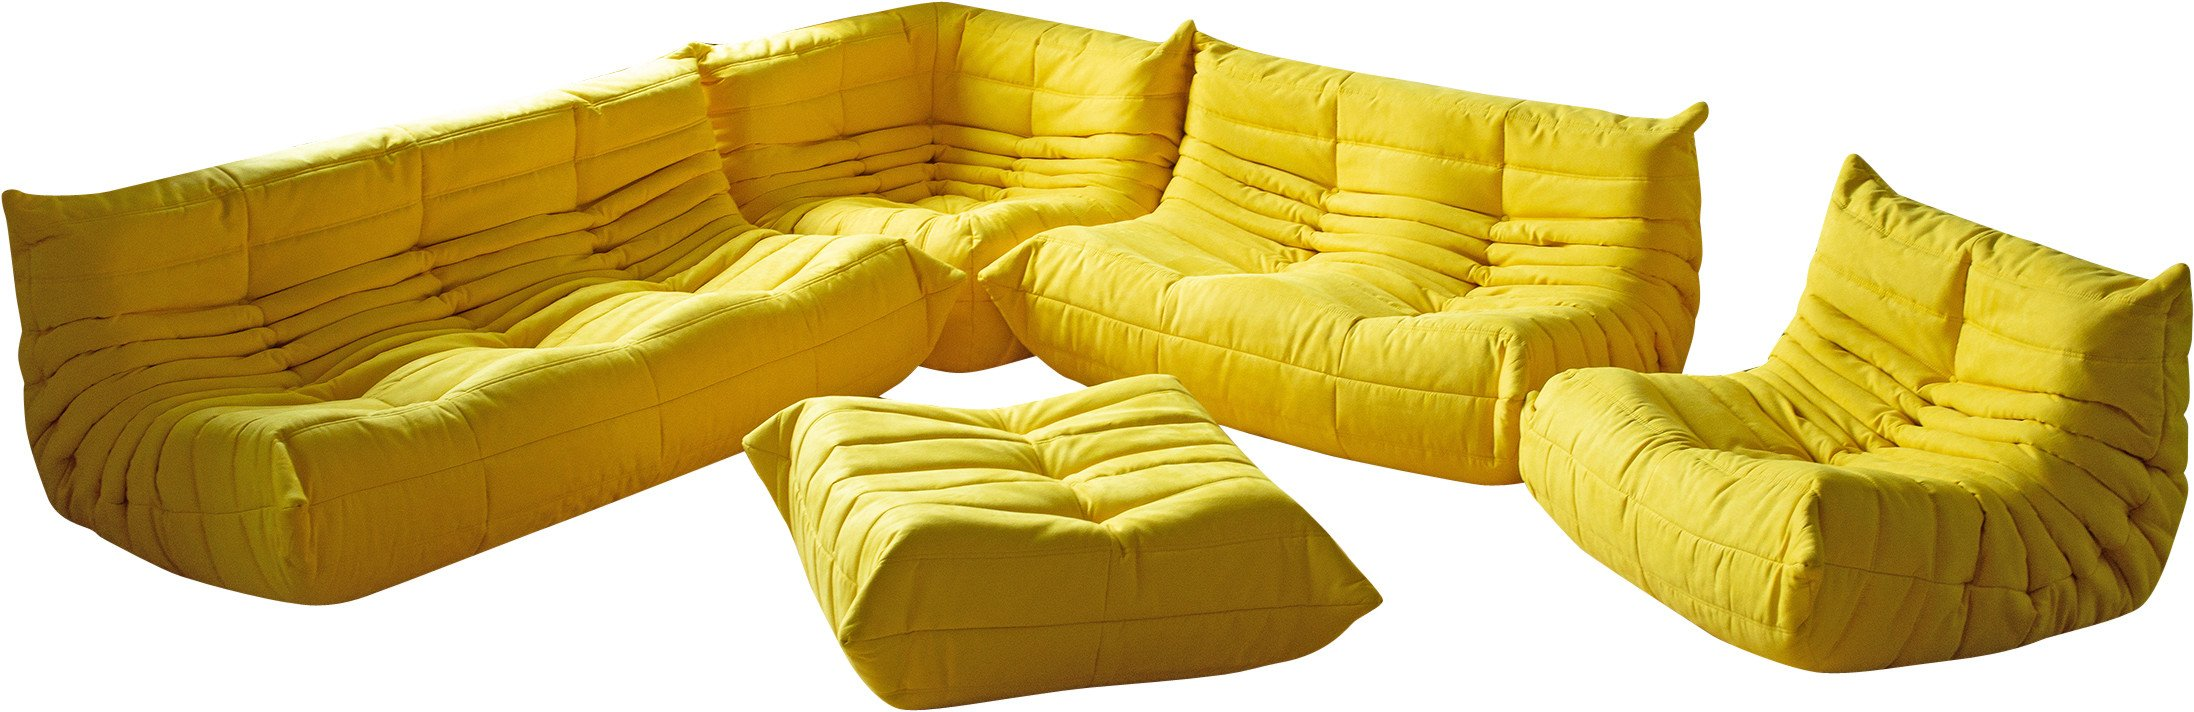 Set of Togo Sofas in Yellow Microfiber by M. Ducaroy, Ligne Roset, France, 1970s